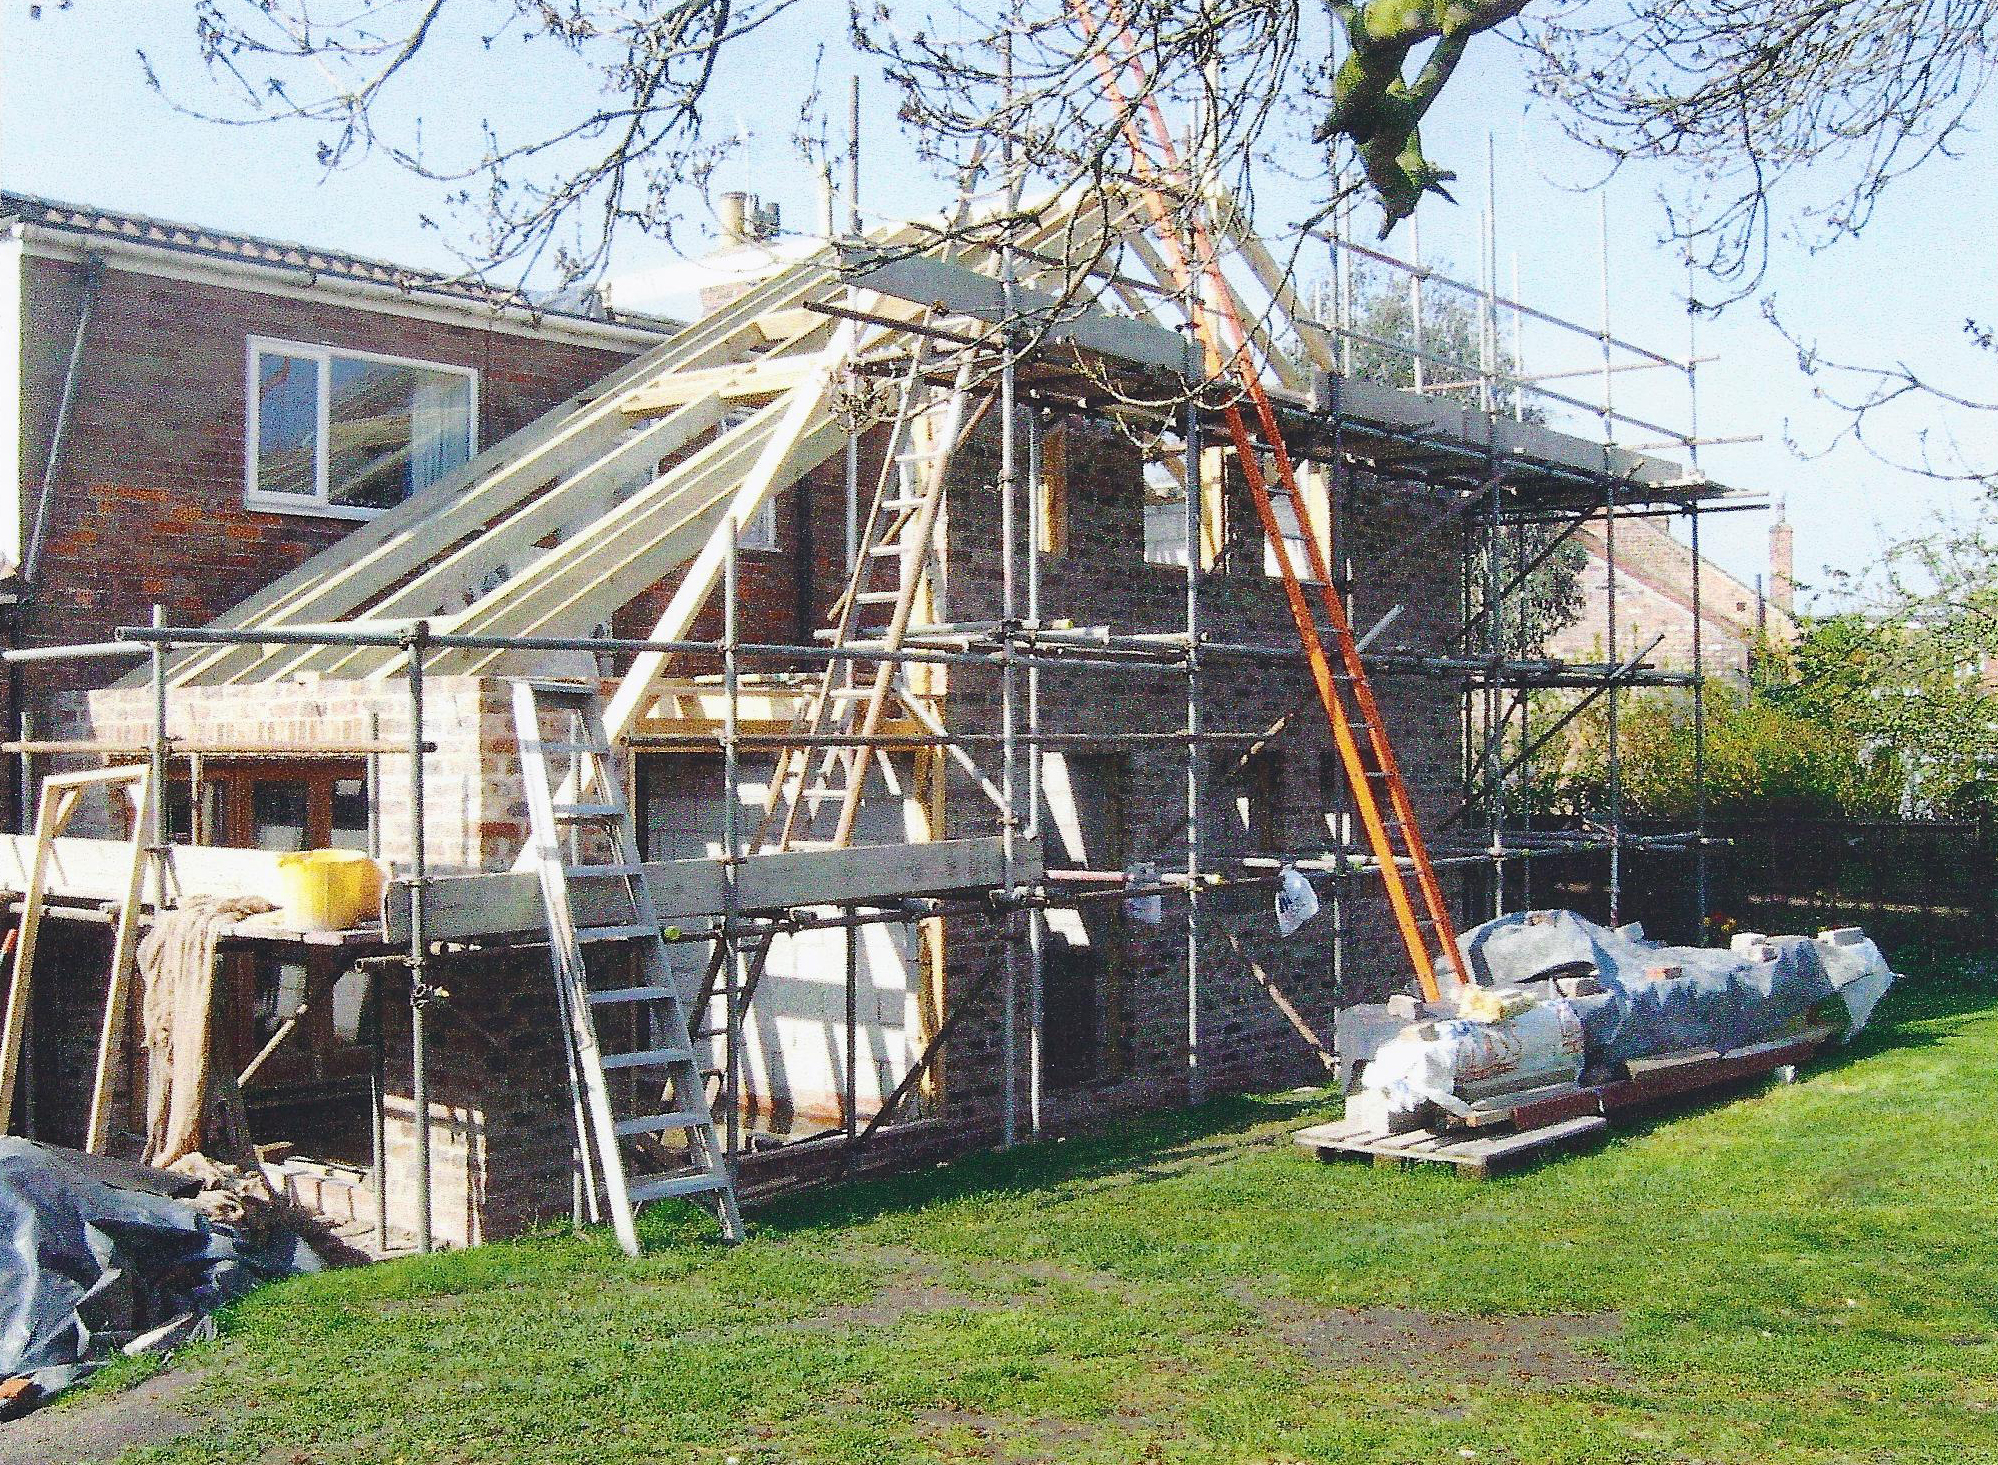 Construction 1 - Old Forge - Hornsea Architects - Samuel Kendall Associates.jpgConstruction 1 - Old Forge - Hornsea Architects - Samuel Kendall Associates